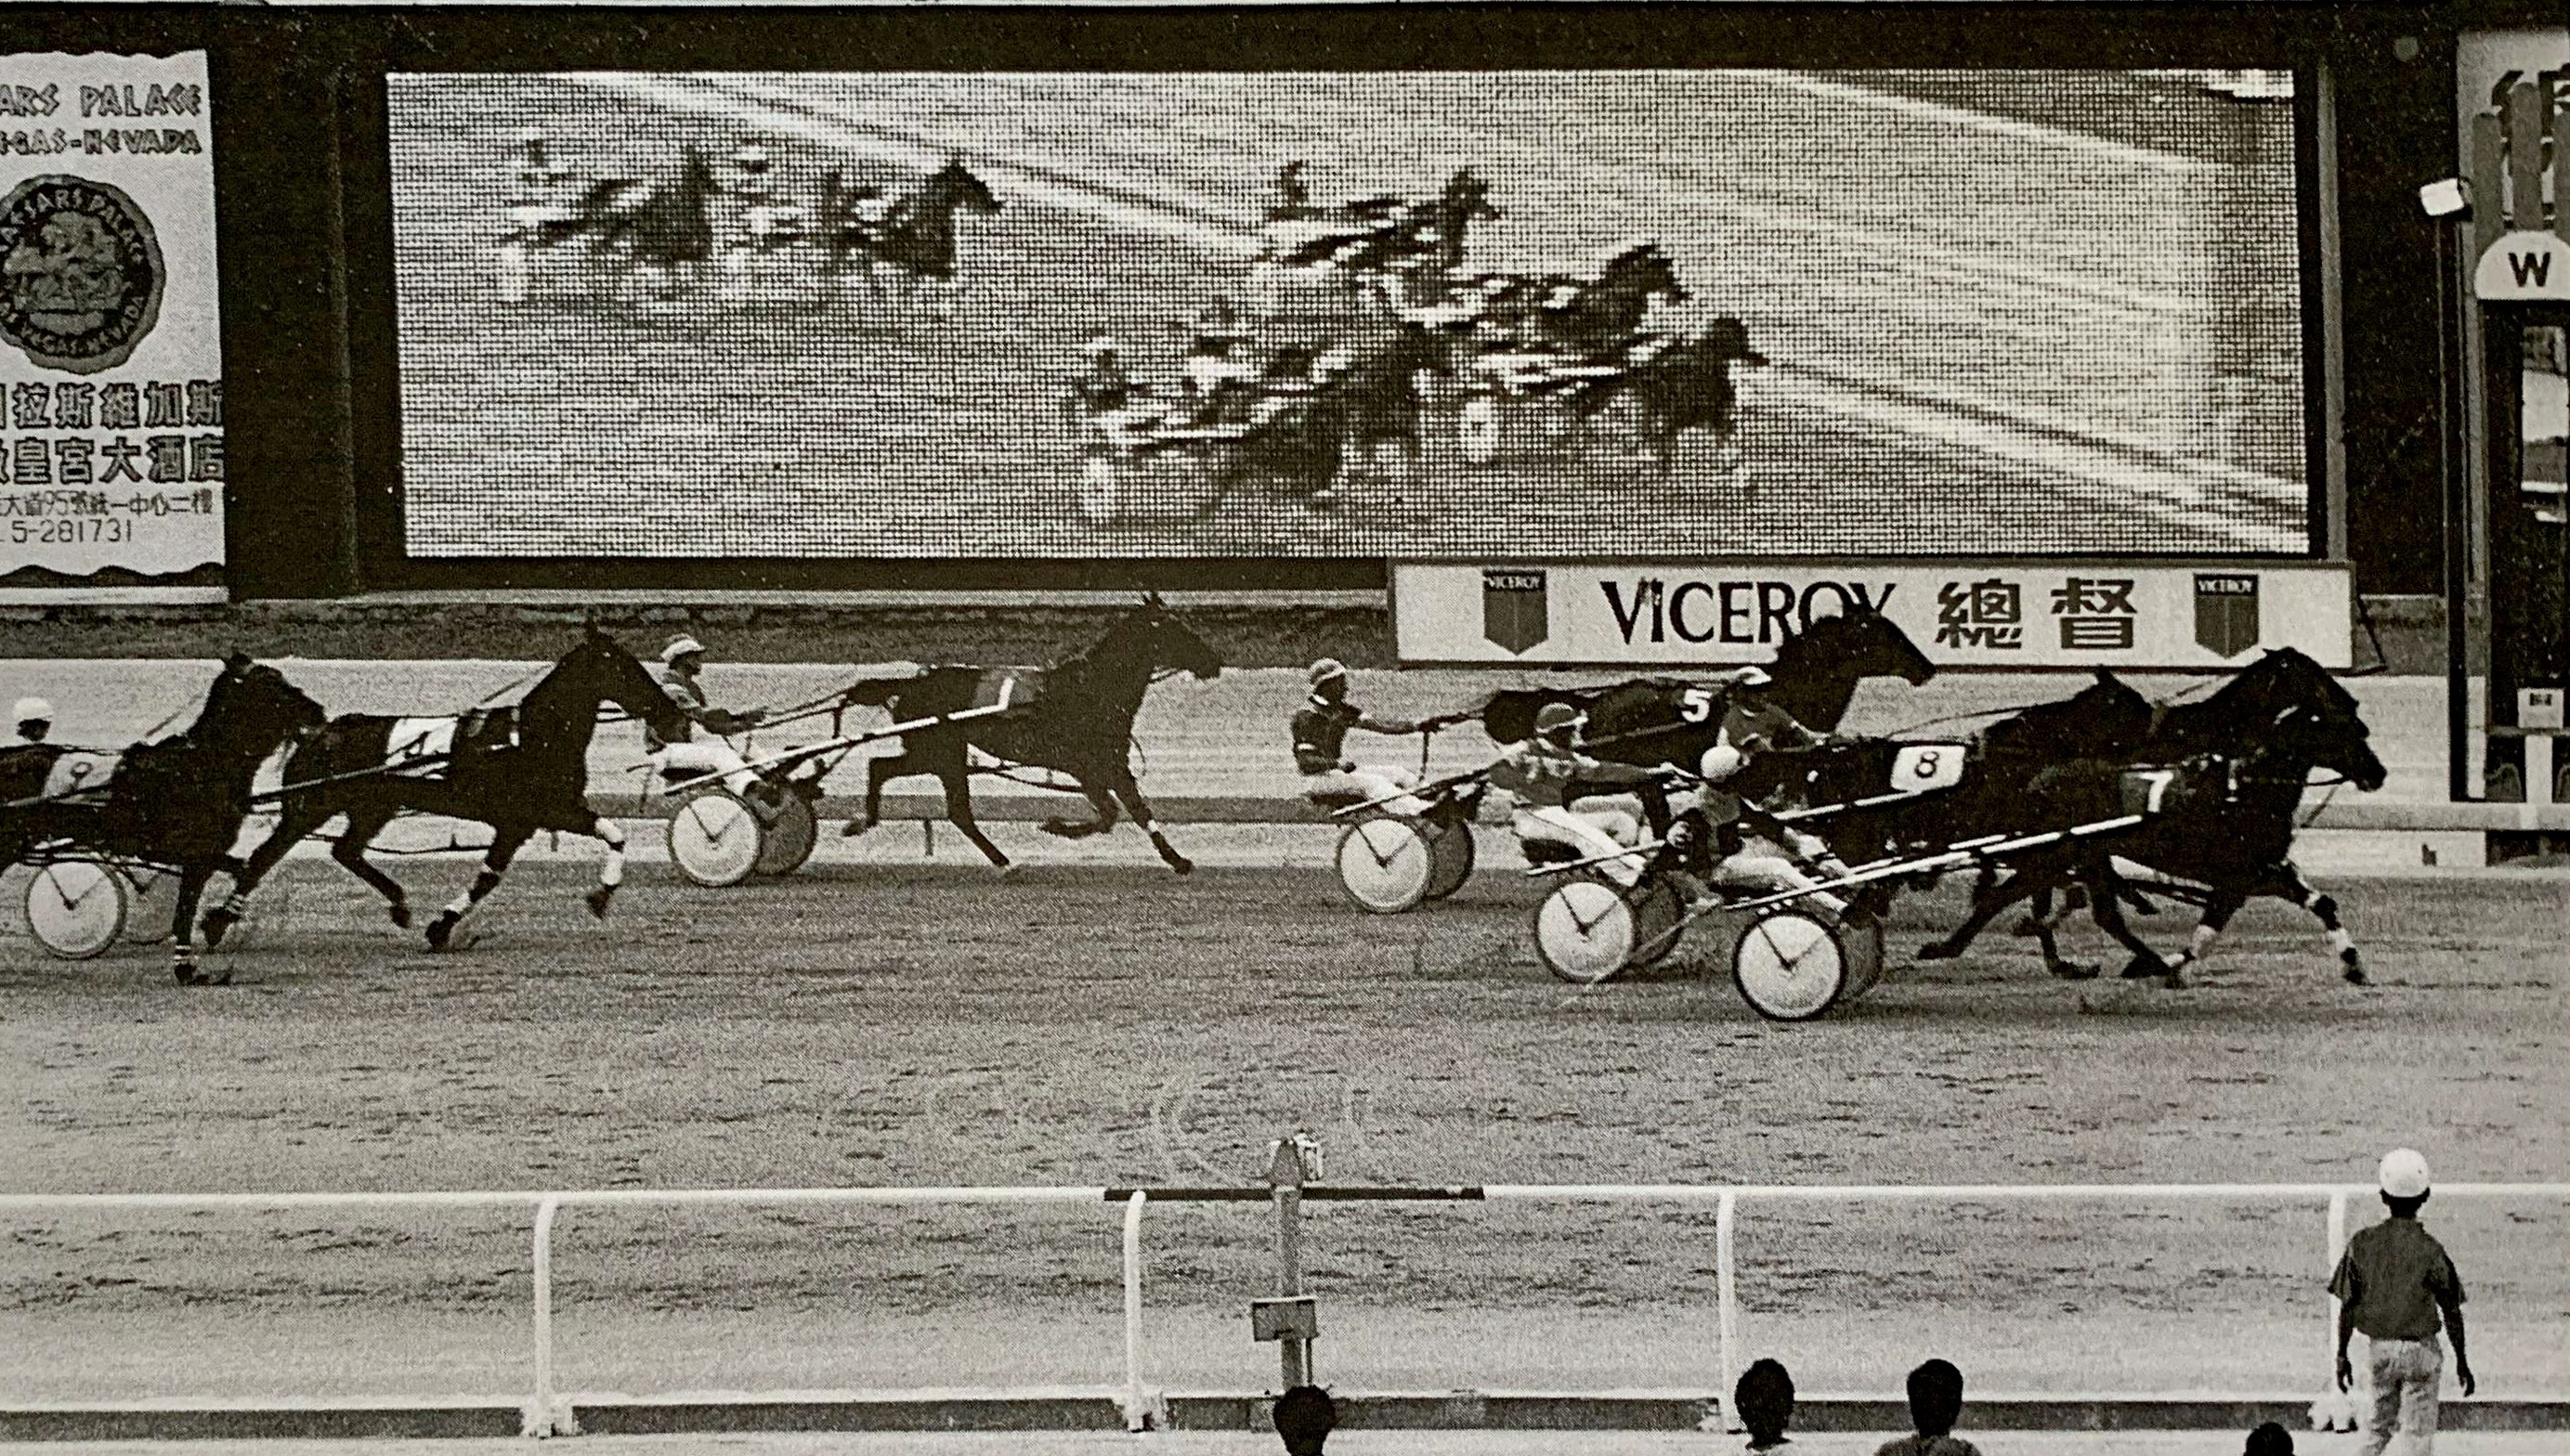 Jockey Club with Harness Cars and Horses